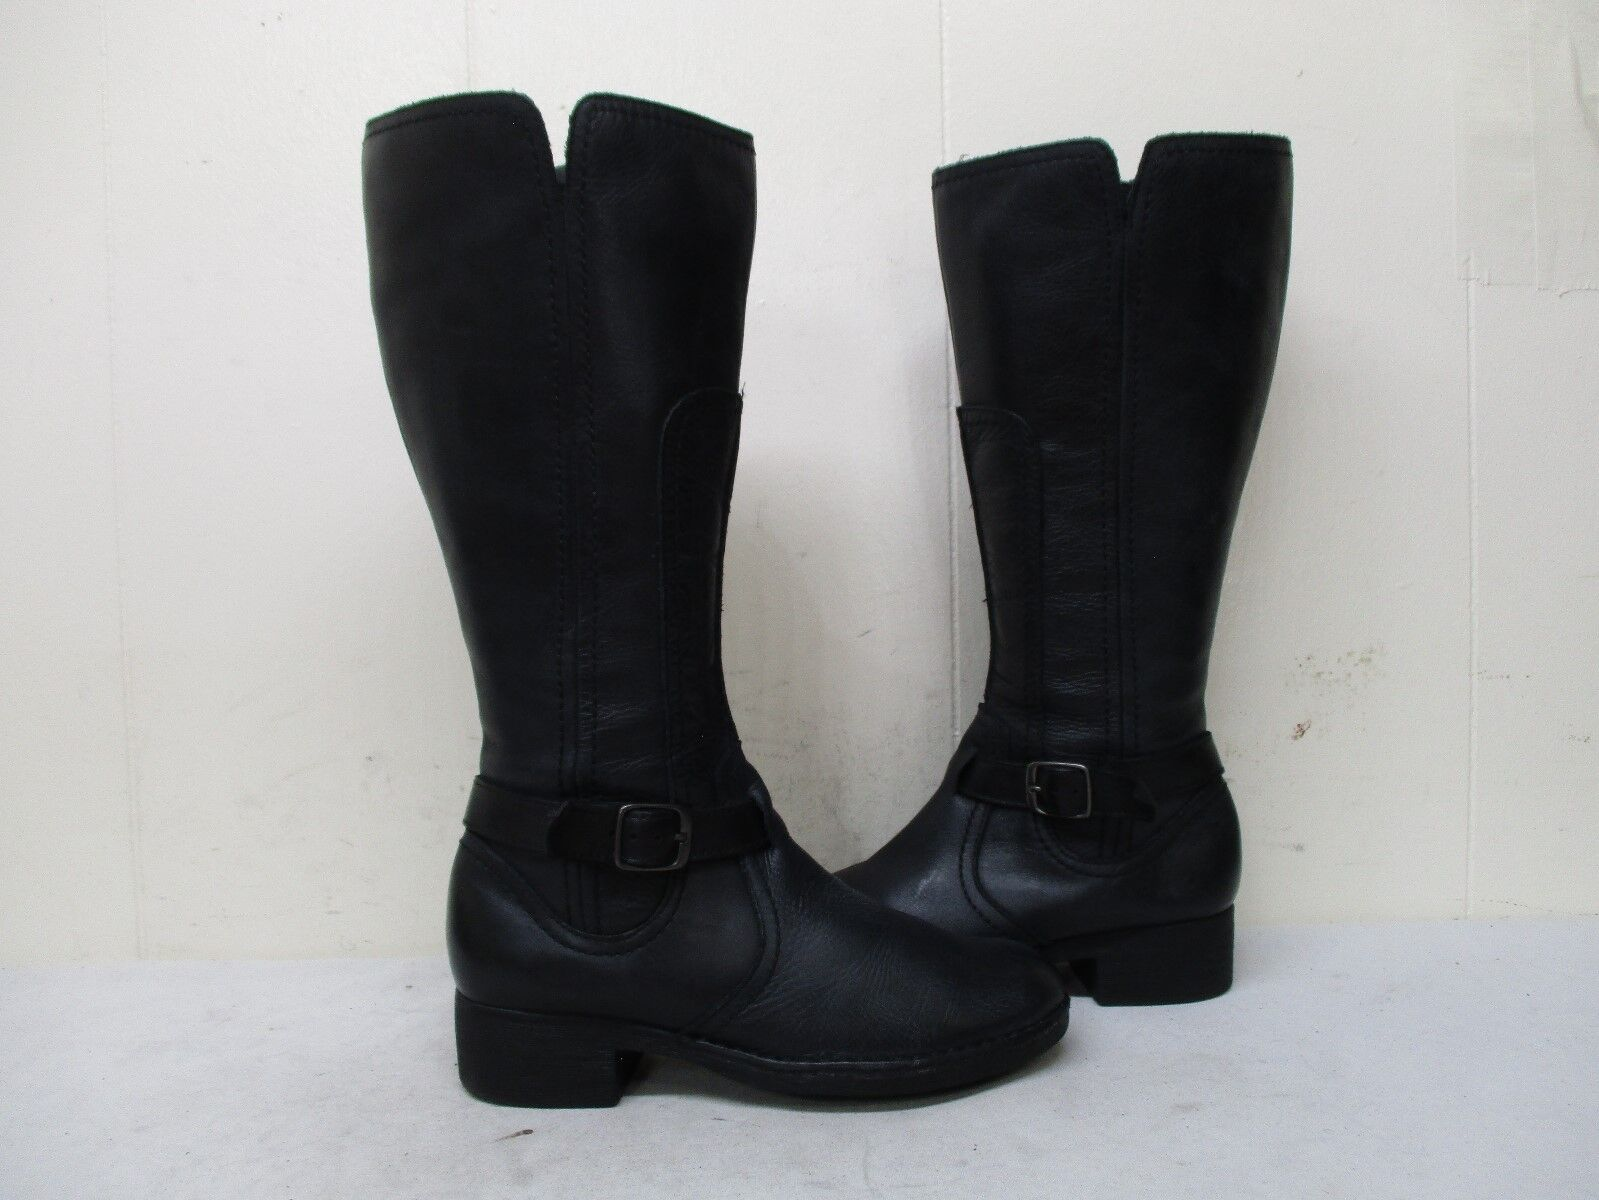 Clarks Black Leather Zip Riding Boots Womens Size 5 M Style 34933